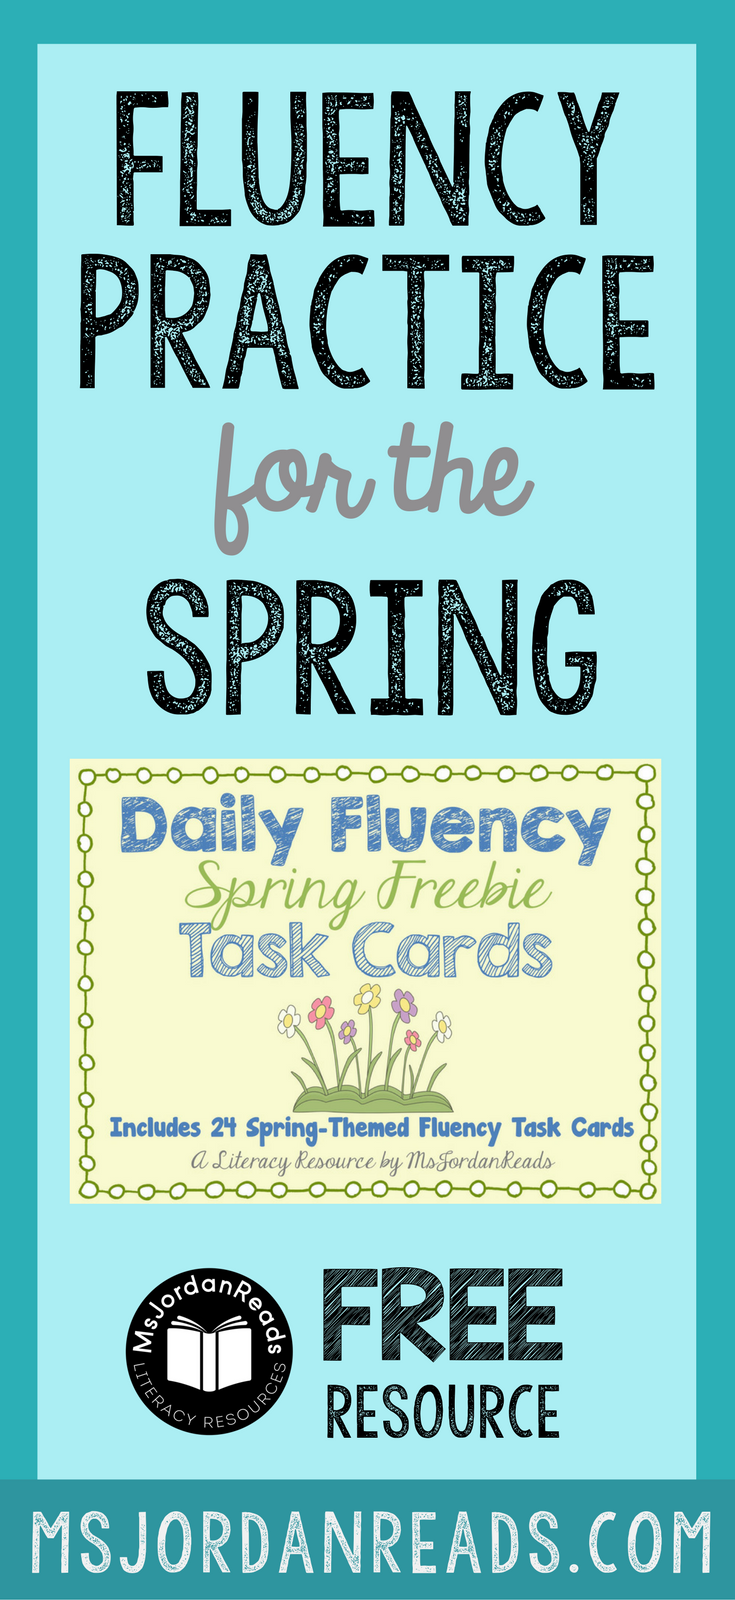 Fluency Task Cards for Spring that you can download for your classroom FREE! | Free printable task cards for fluency practice at school or at home. Students will enjoy the variety of fluency tasks!